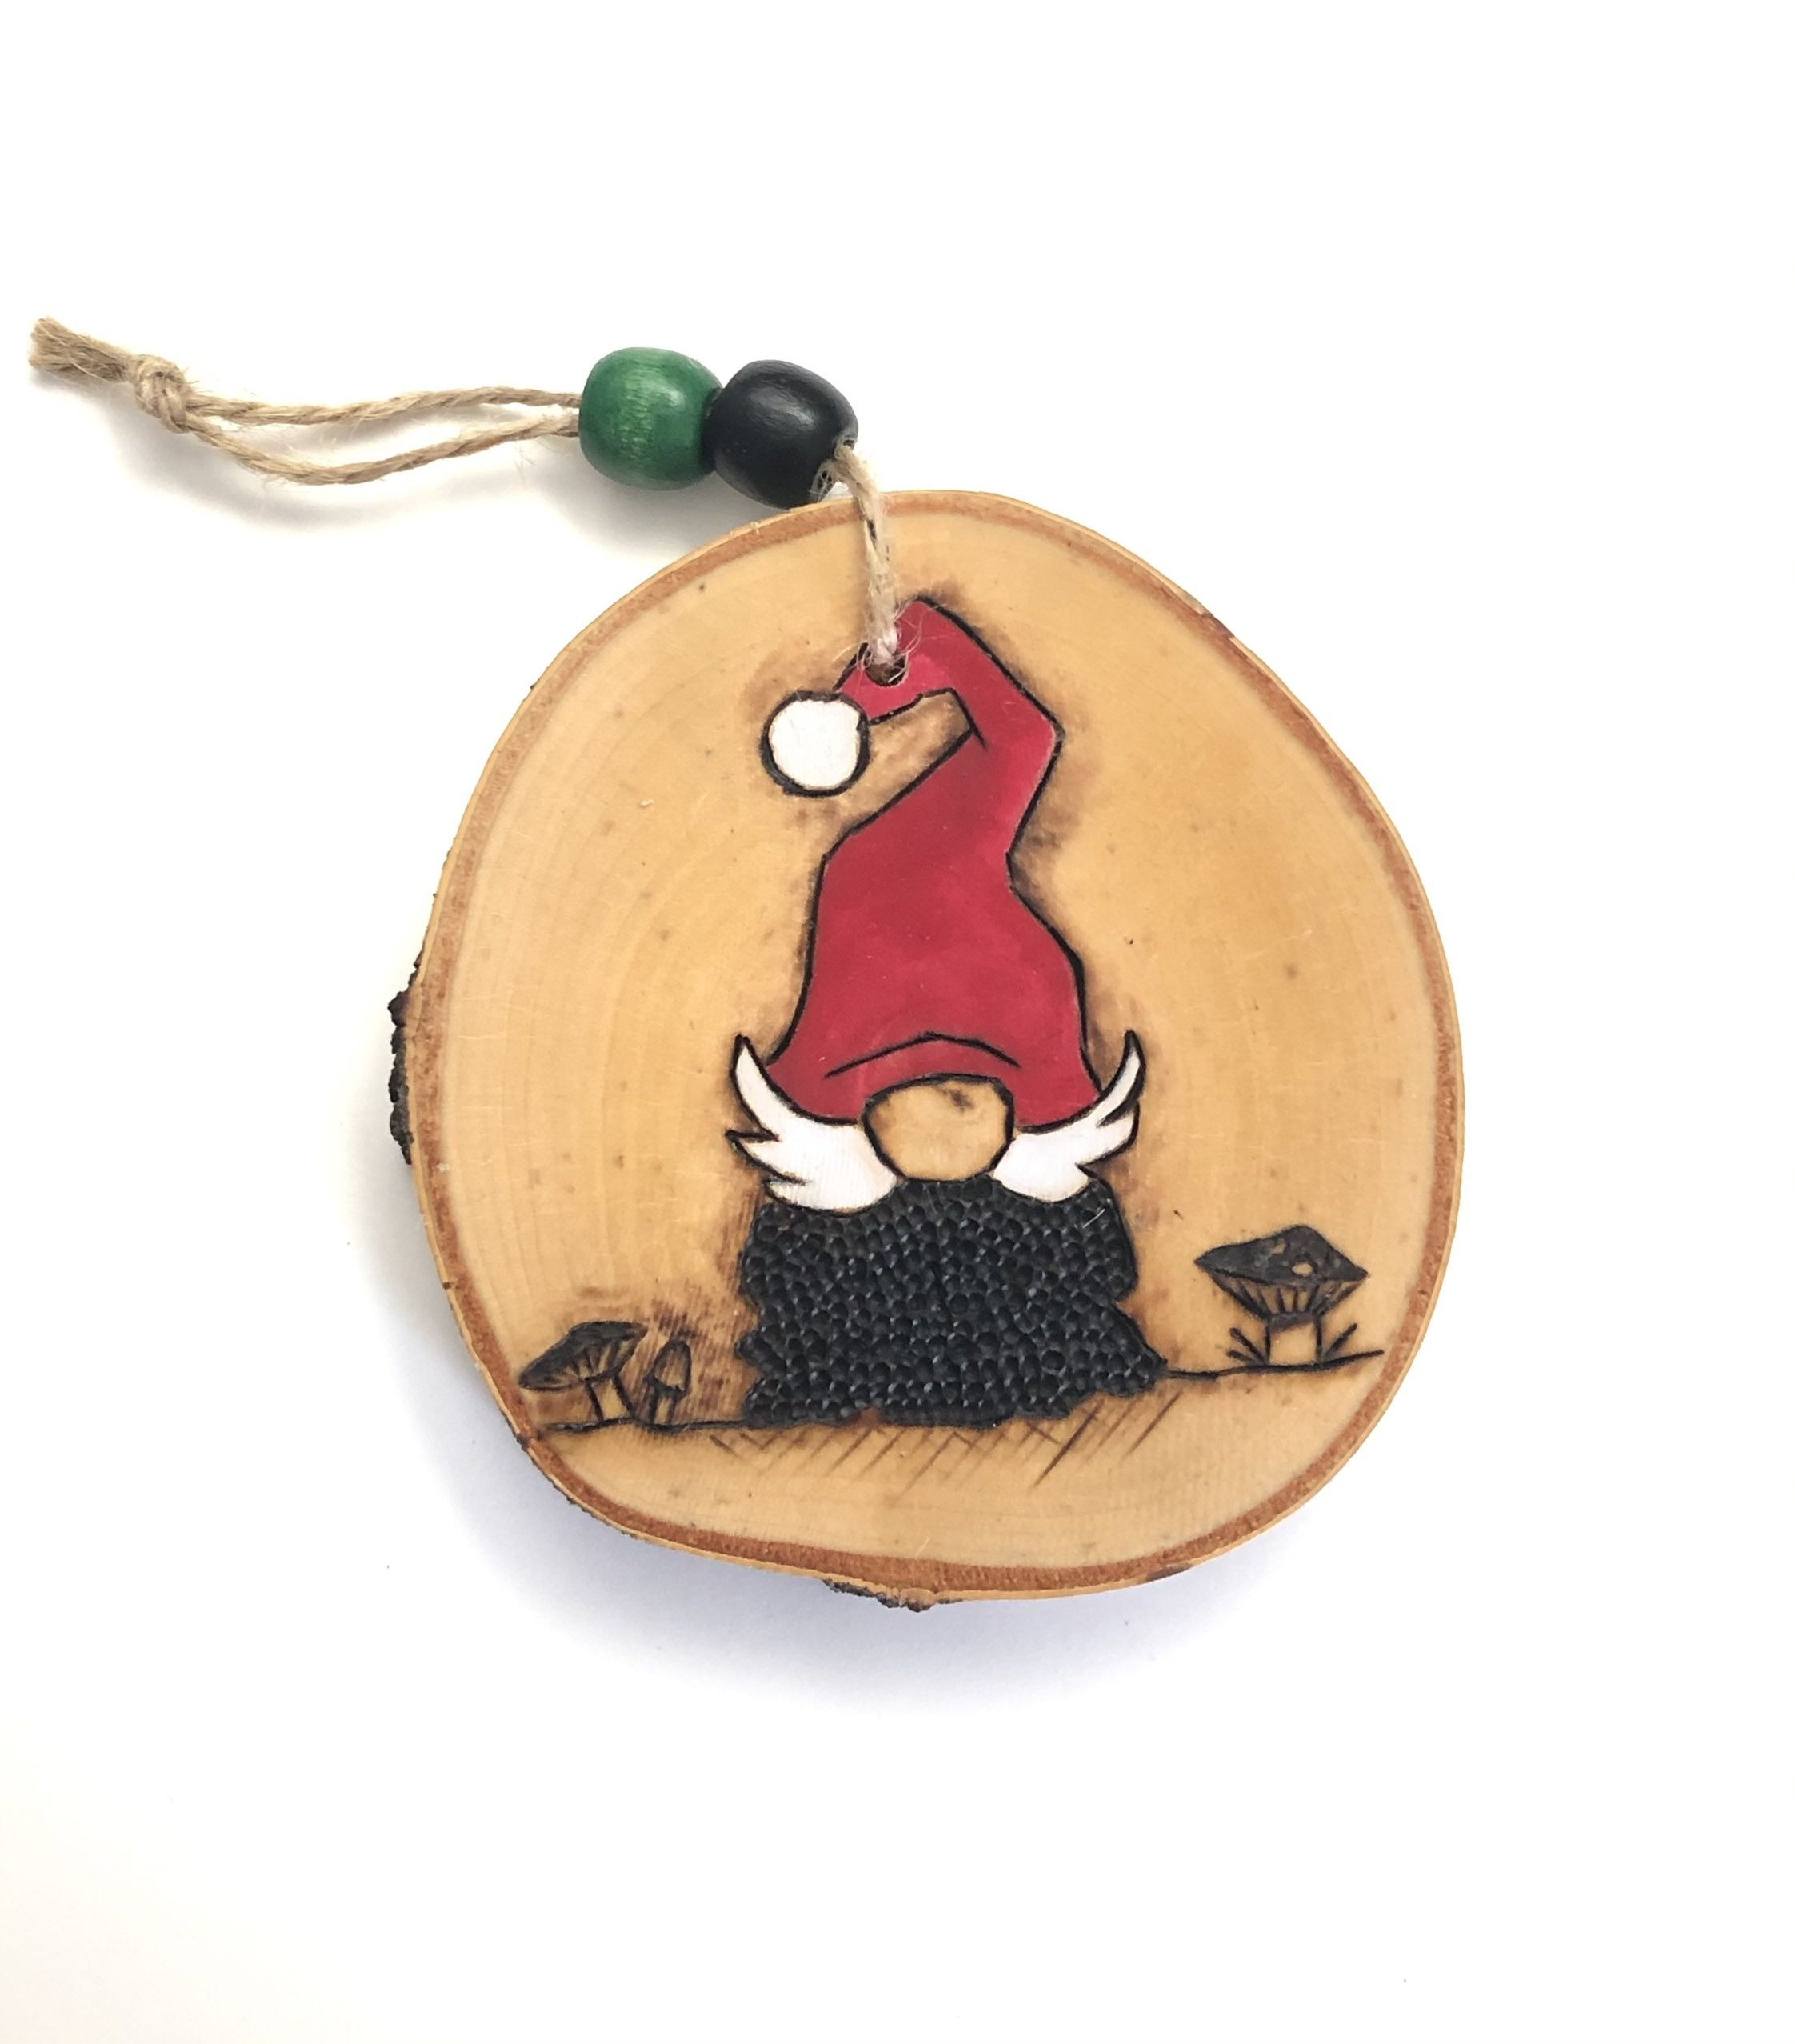 Christmas Gnome Wood Slice Ornament Etsy Wood Christmas Ornaments Wood Slice Ornament Country Christmas Ornaments